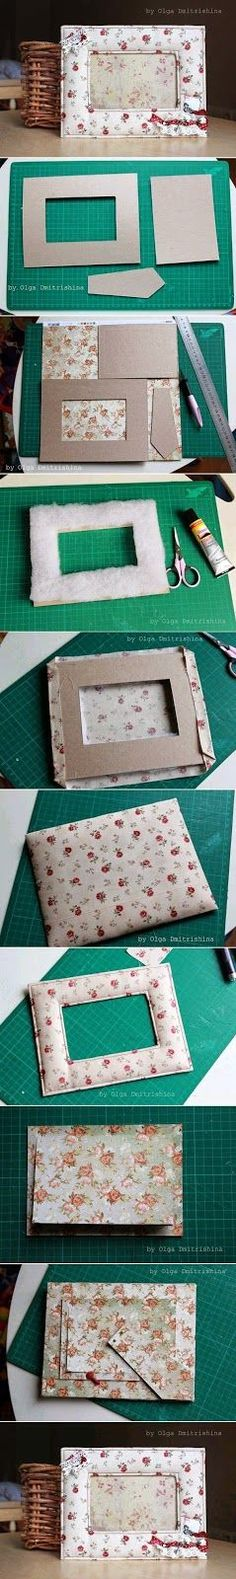 Beste DIY-Bilderrahmen und Bilderrahmen-Ideen - Nice Soft Photo Frame - How To M . Cadre Photo Diy, Diy Photo, Creative Crafts, Diy And Crafts, Decor Crafts, Marco Diy, Diy Projects To Try, Fabric Crafts, Cardboard Crafts